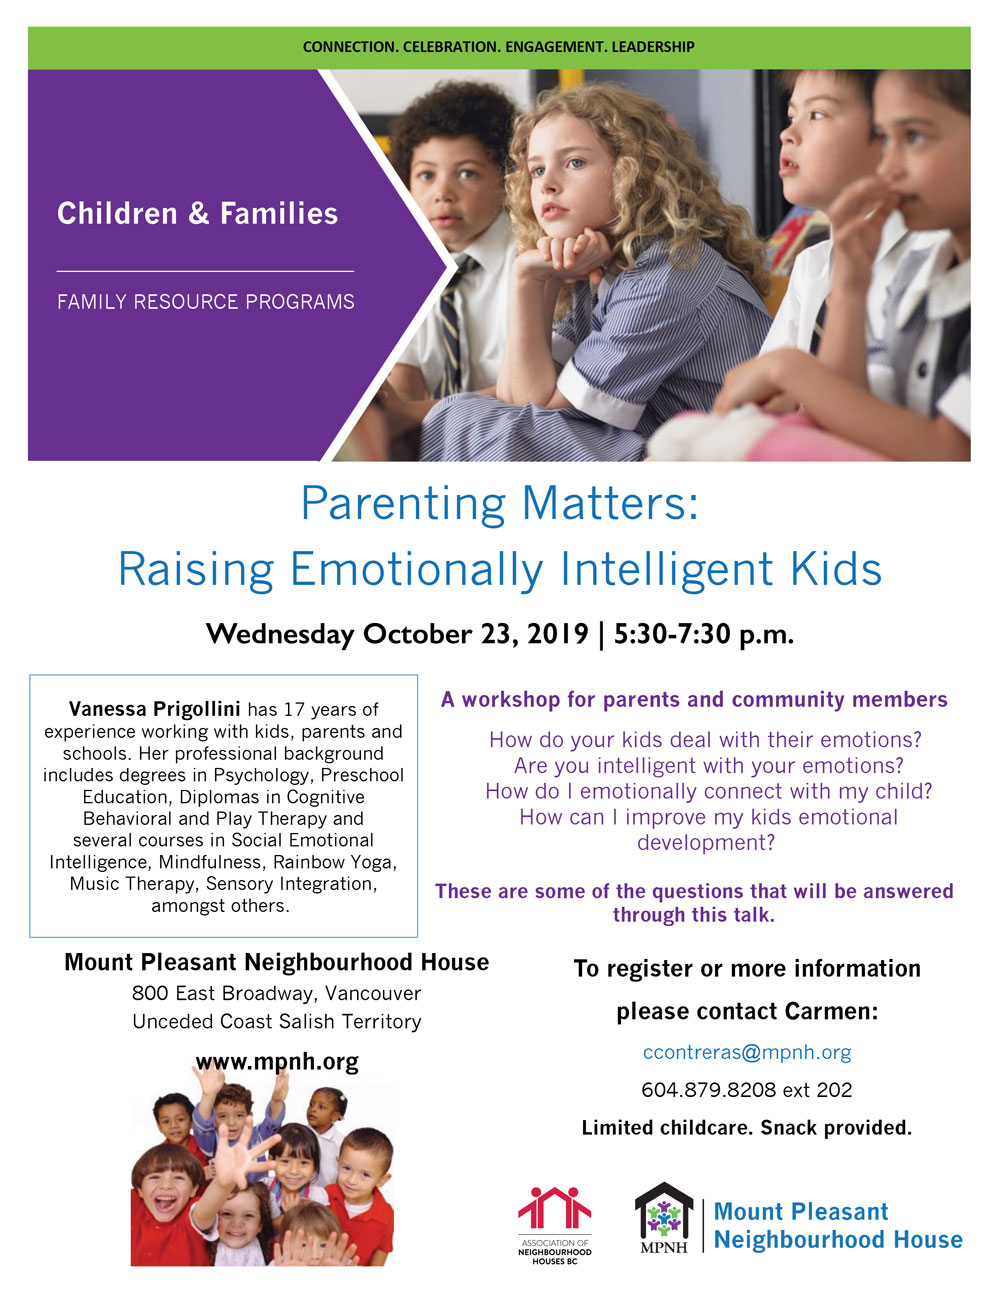 An image of the poster with event details, featuring photos of children learning, listening, and playing together.